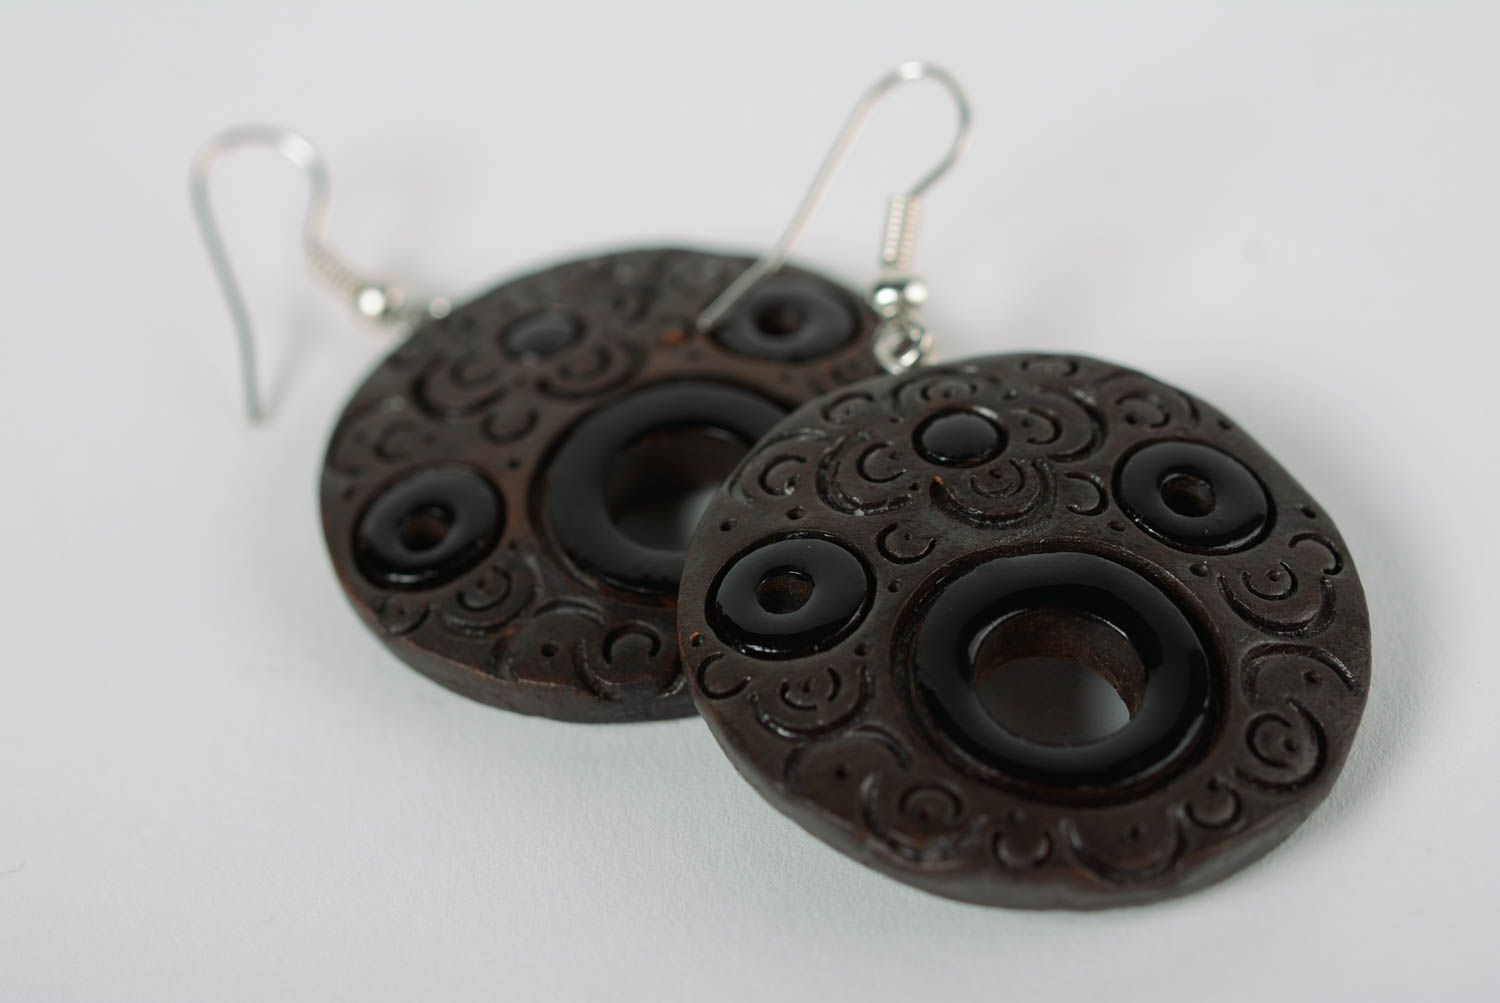 dangle earrings Handcrafted round earrings made of clay with colored enamel paintings - MADEheart.com